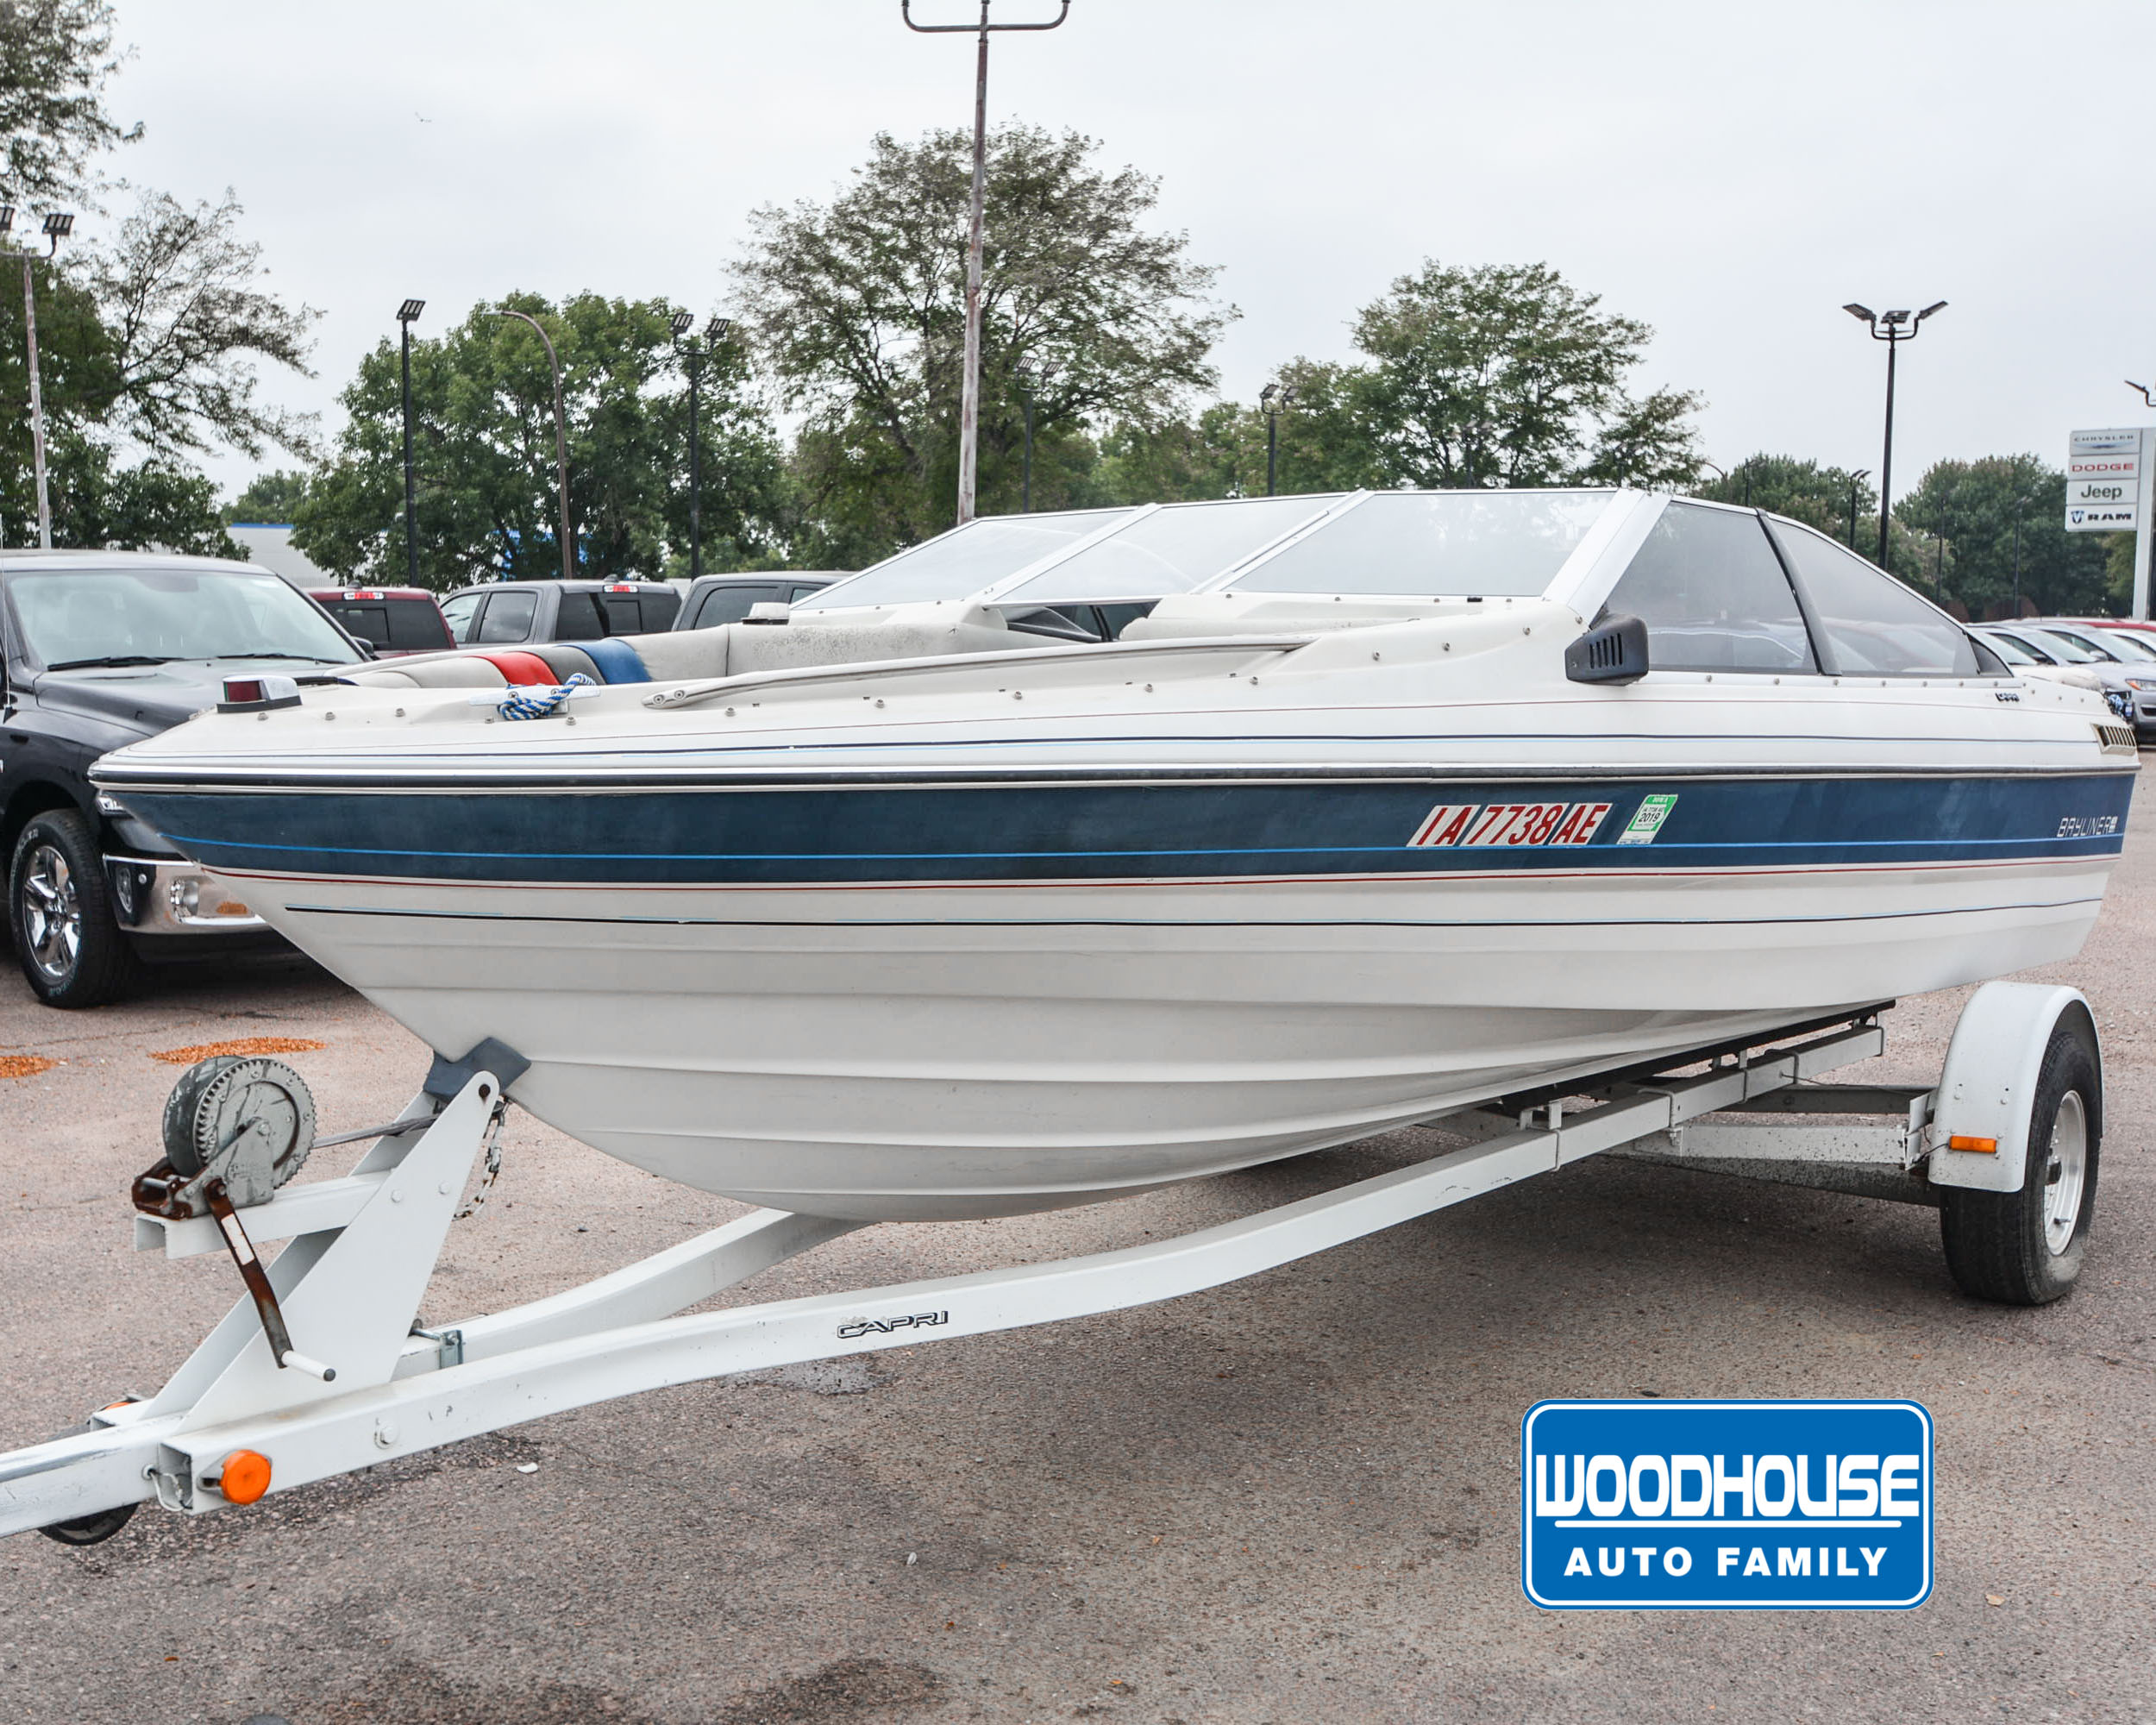 Astounding Woodhouse Used 1987 Bayliner Capri For Sale Chrysler Caraccident5 Cool Chair Designs And Ideas Caraccident5Info